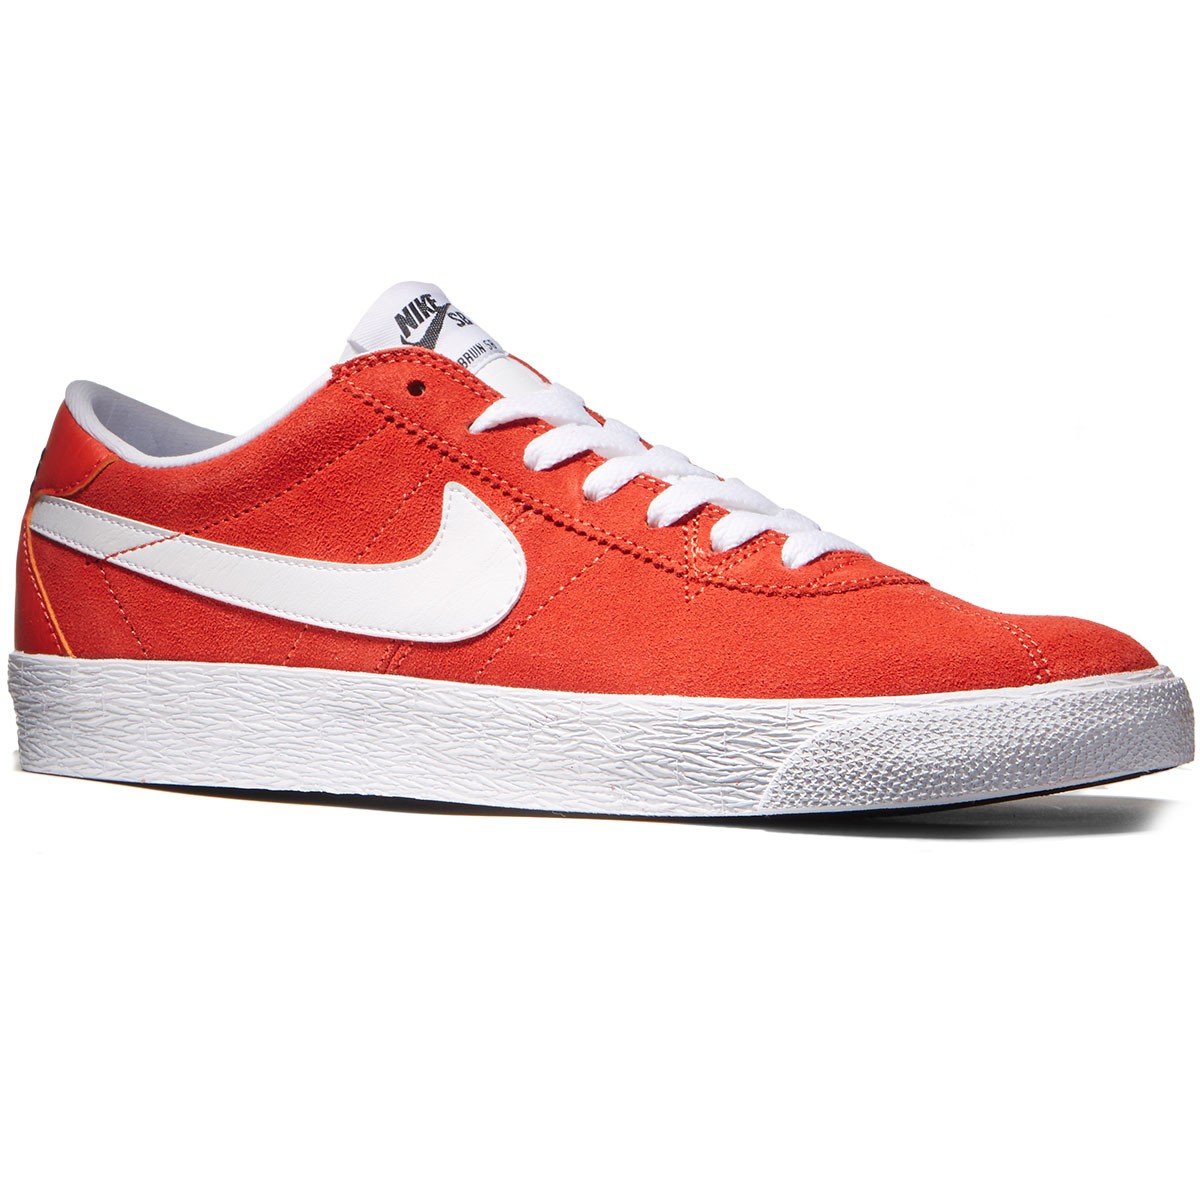 Nike Bruin SB Premium SE Shoes - Max Orange/White/Black - 8.5